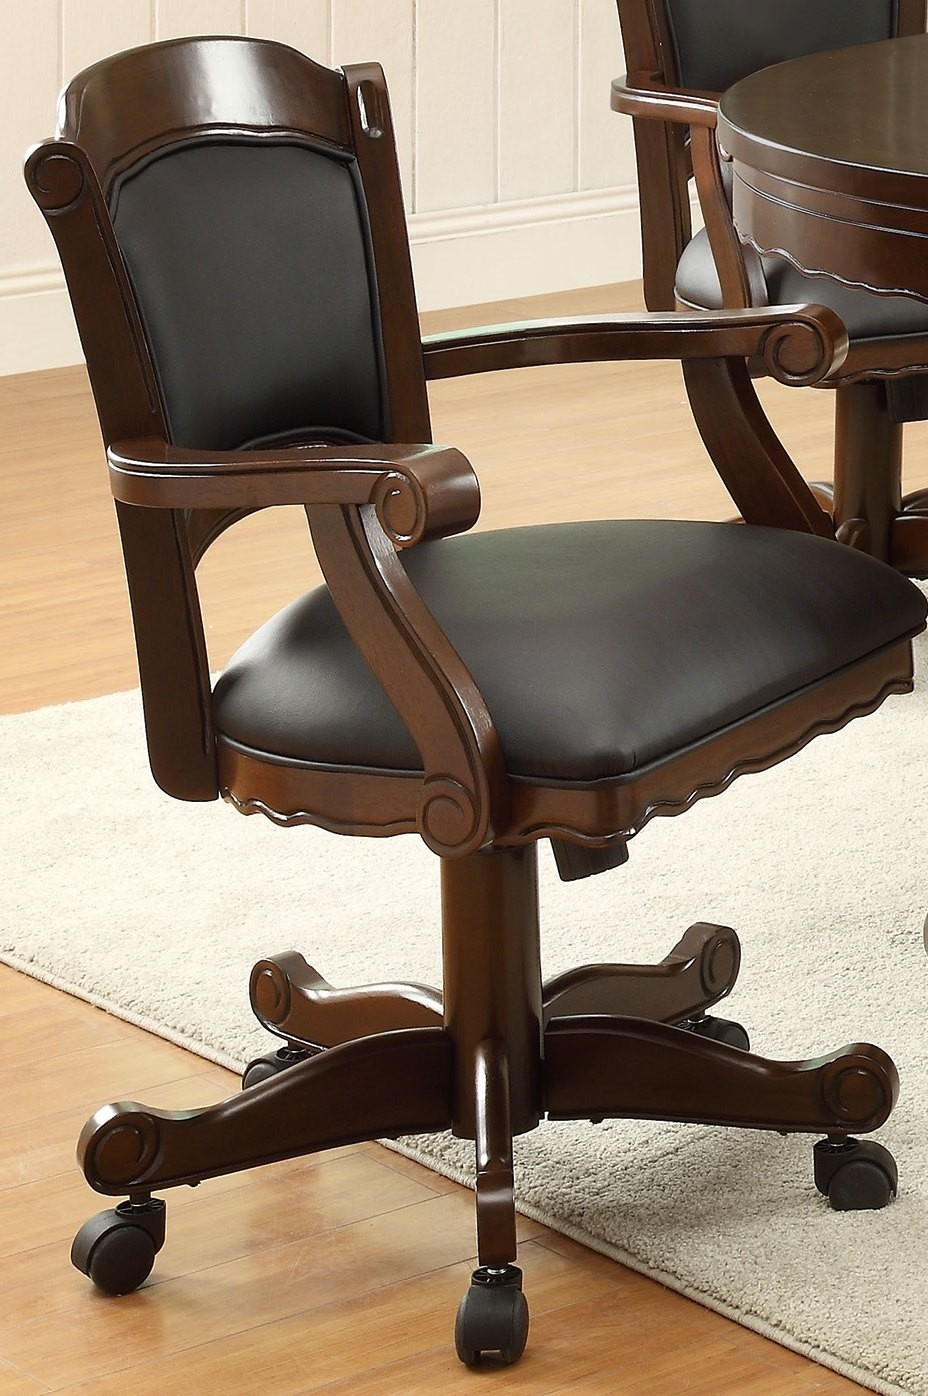 Solid oak arm chair from coaster coleman furniture